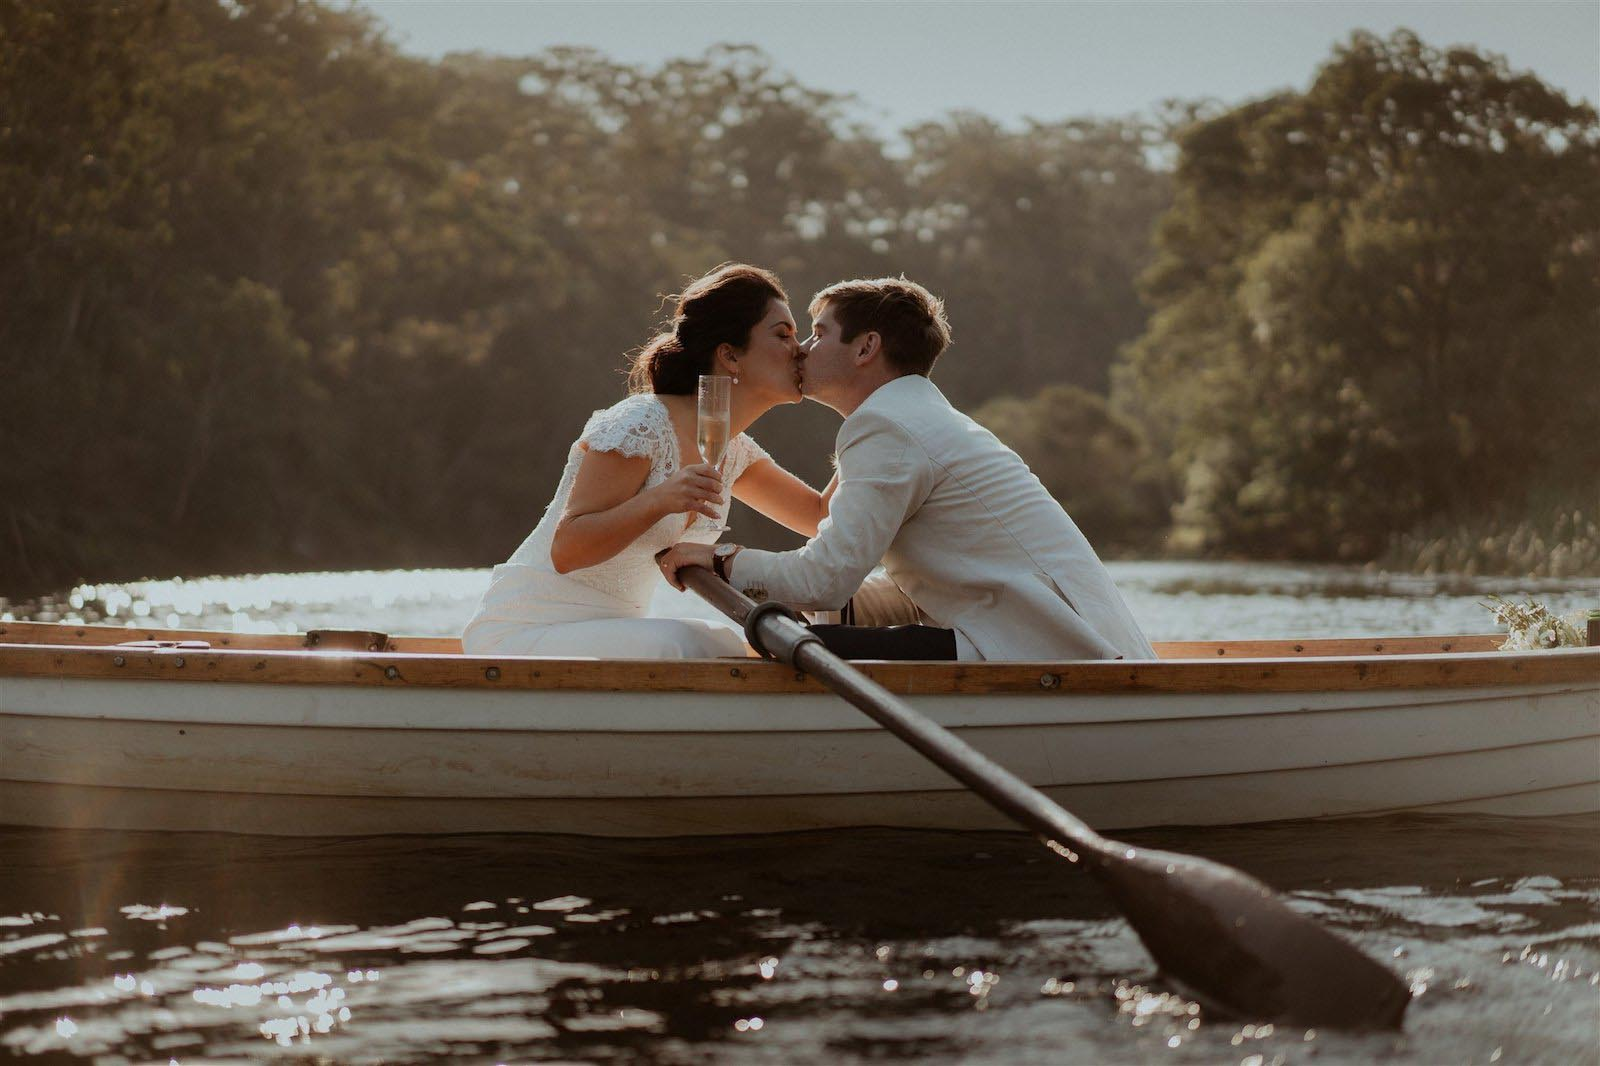 newlyweds at Audley Dance Hall kissing on hire boat